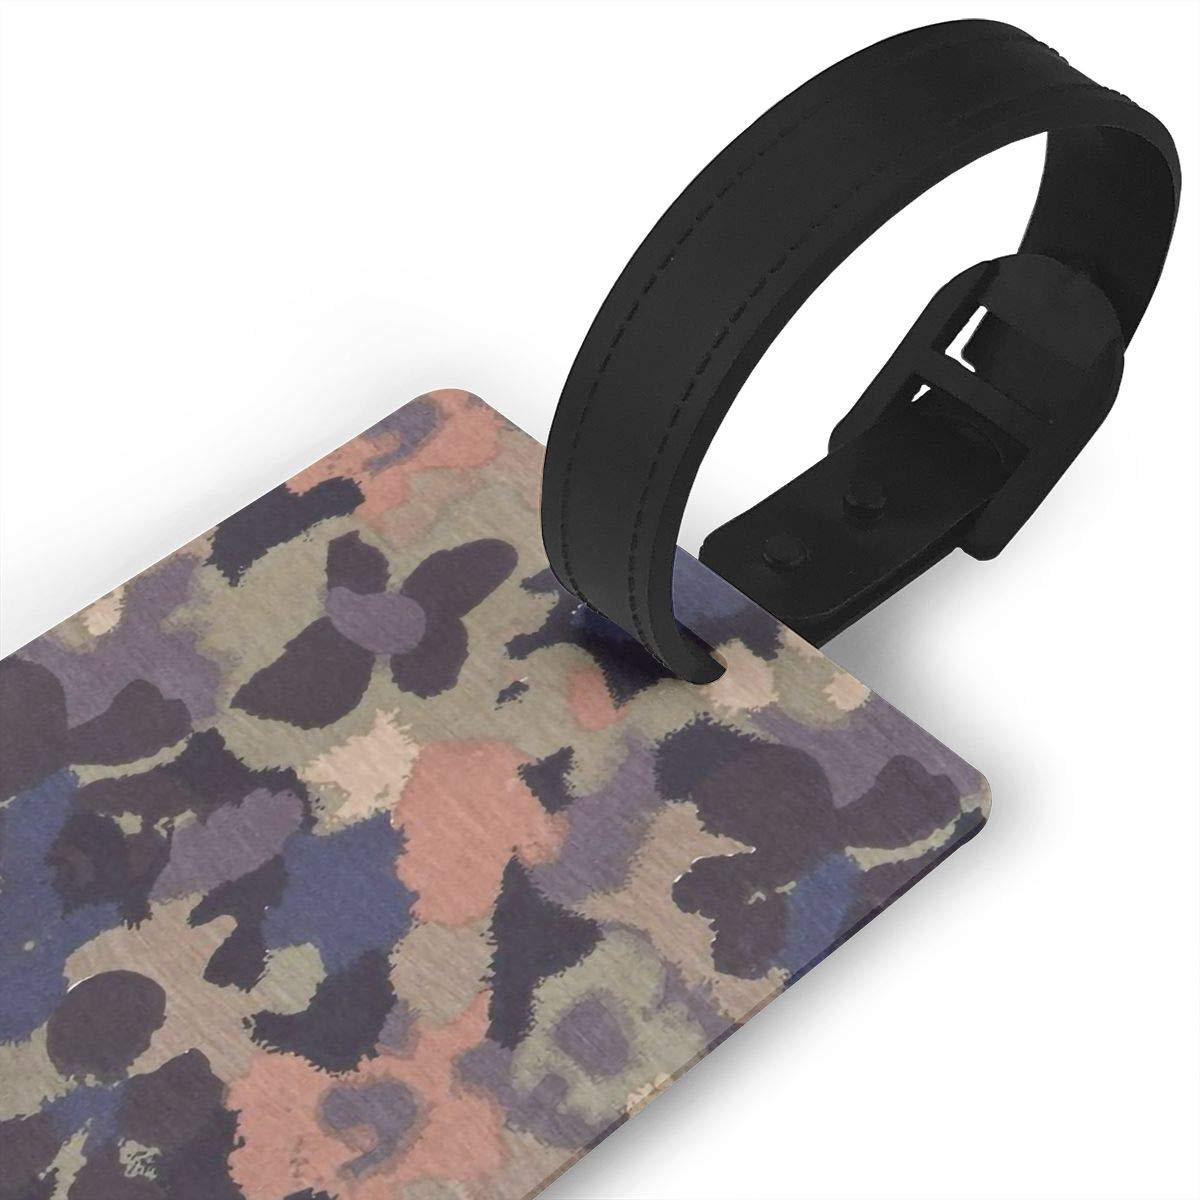 Camouflage Handbag Tag For Travel Bag Suitcase Accessories 2 Pack Luggage Tags